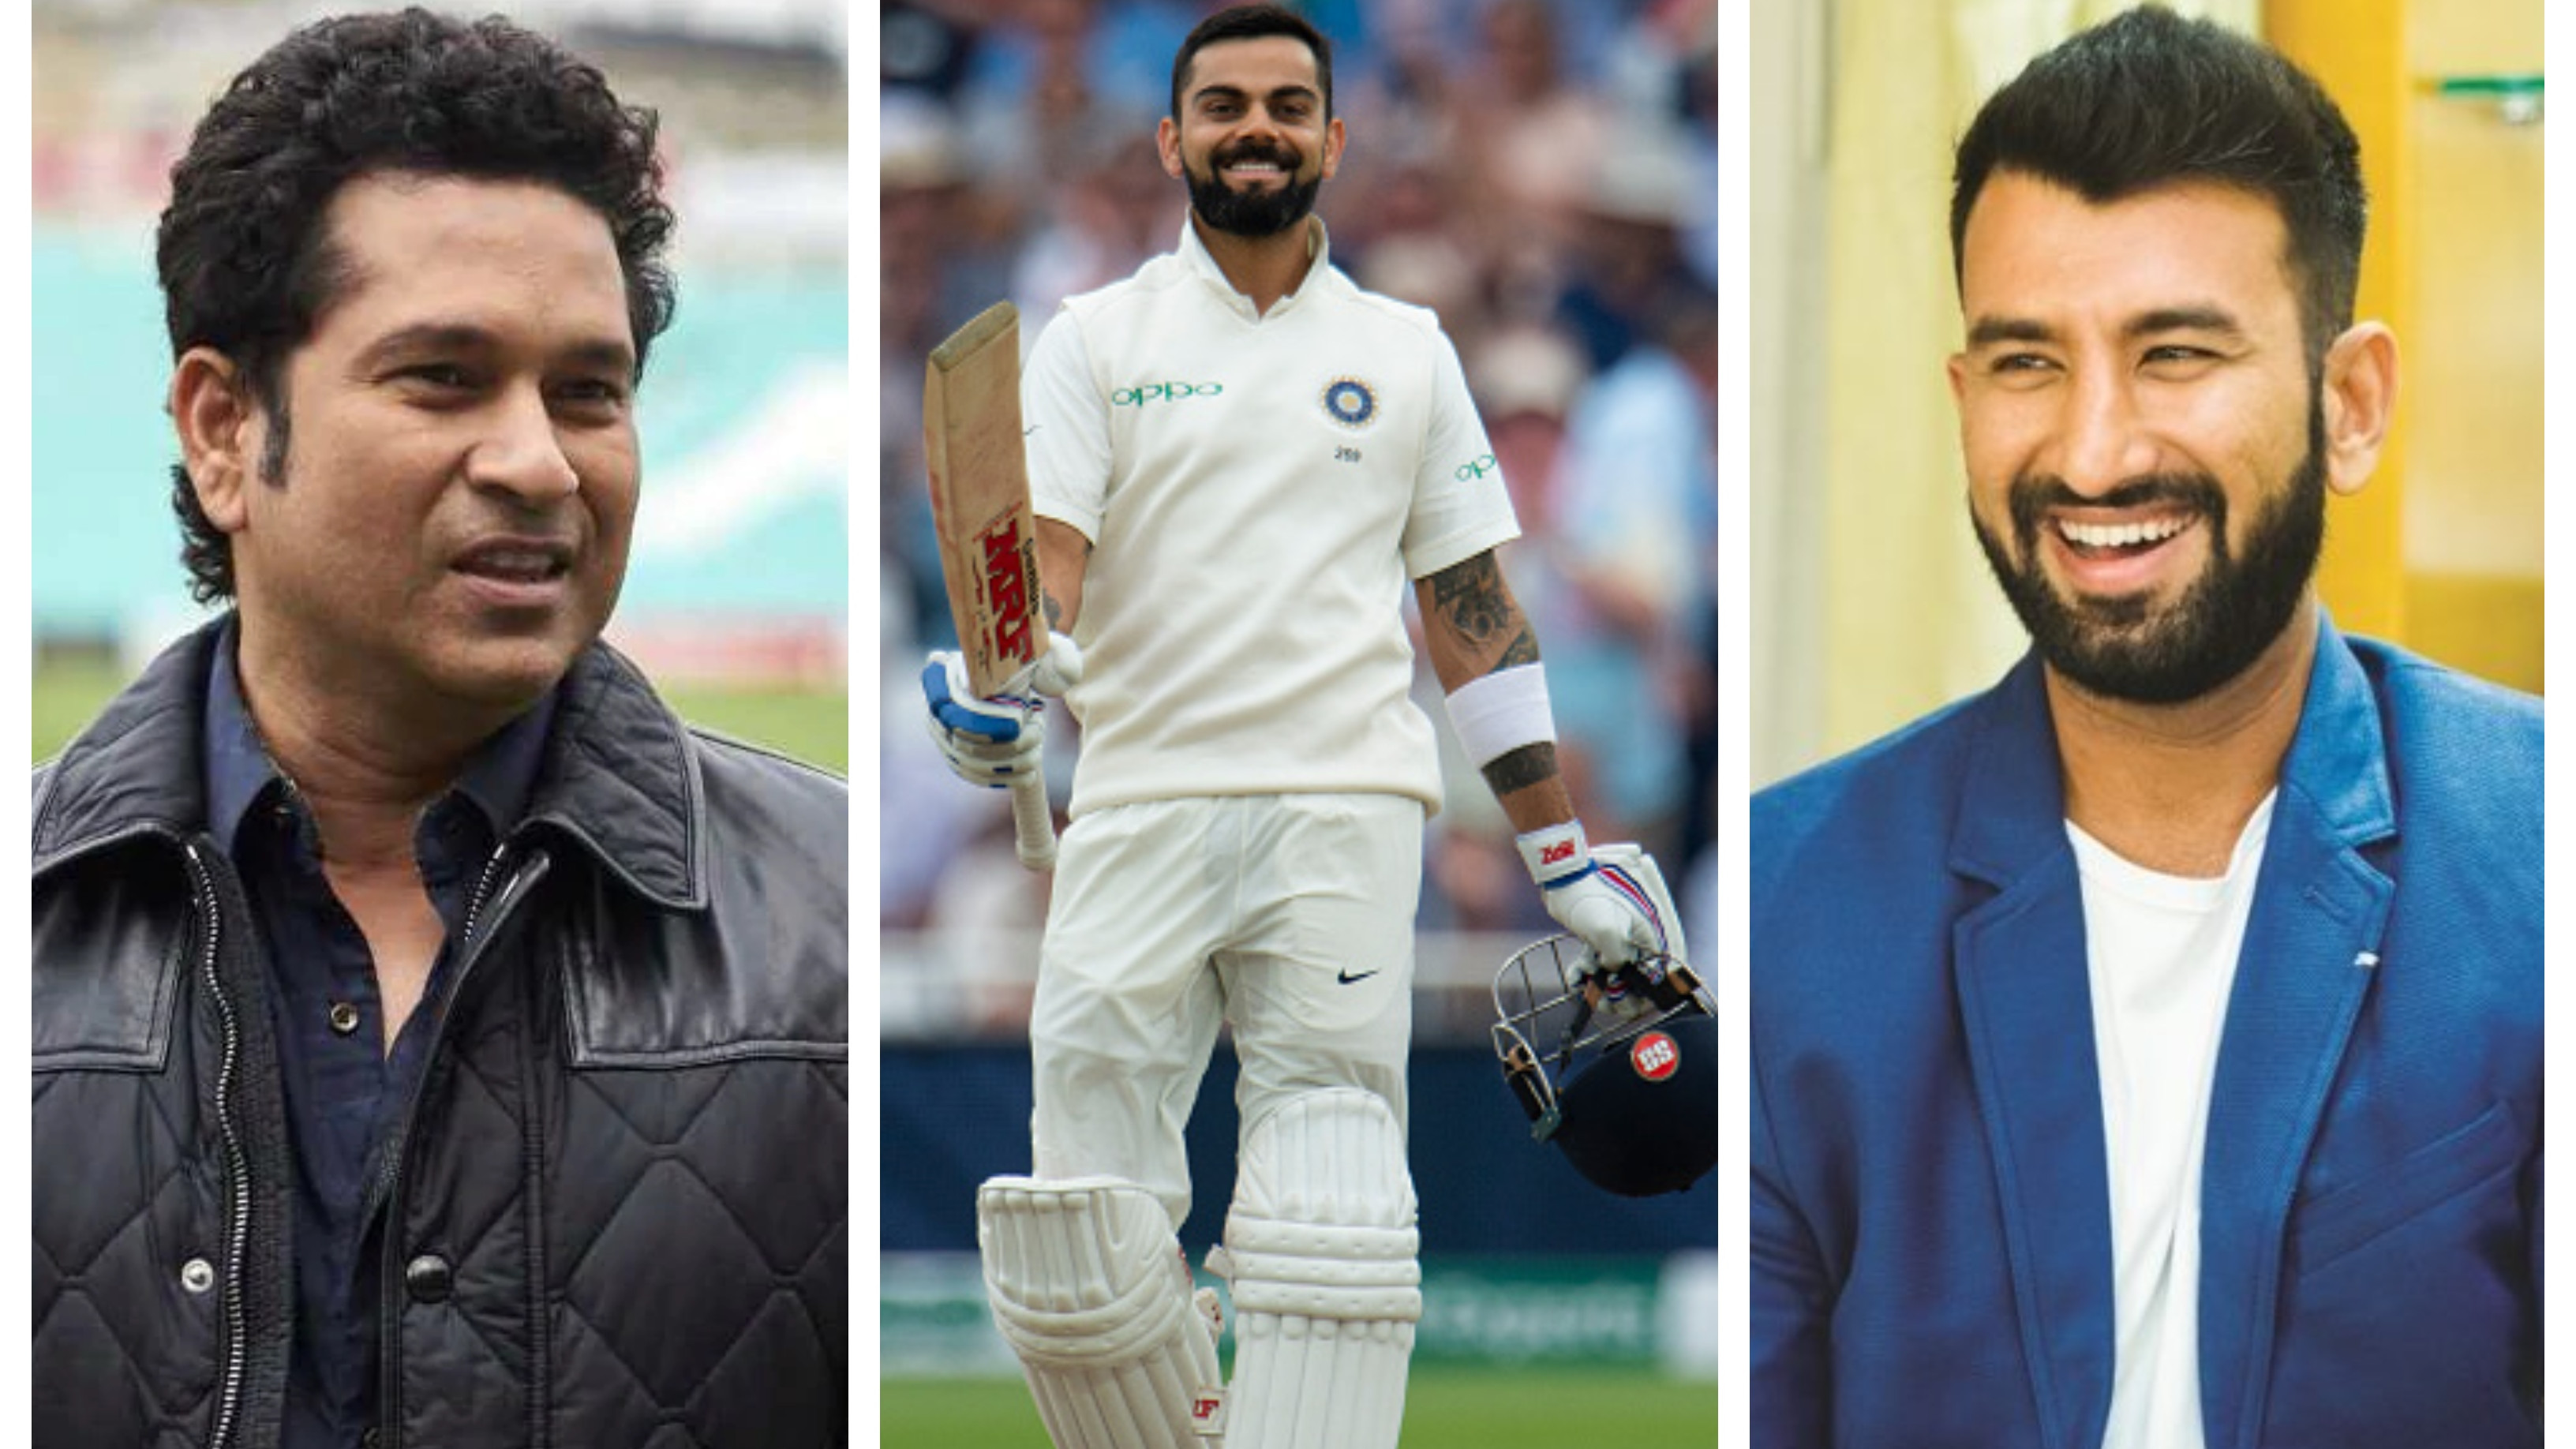 Cricket fraternity congratulates Virat Kohli as he sweeps major ICC awards to create history